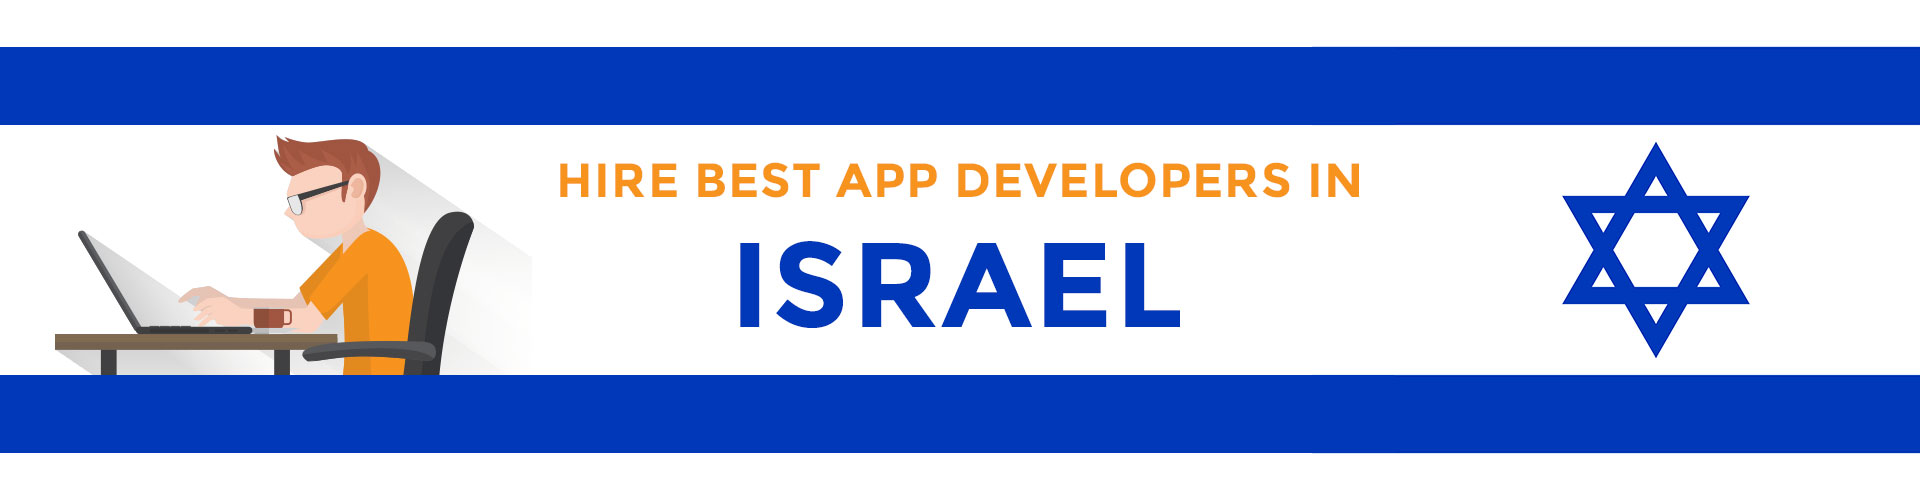 top app development companies israel